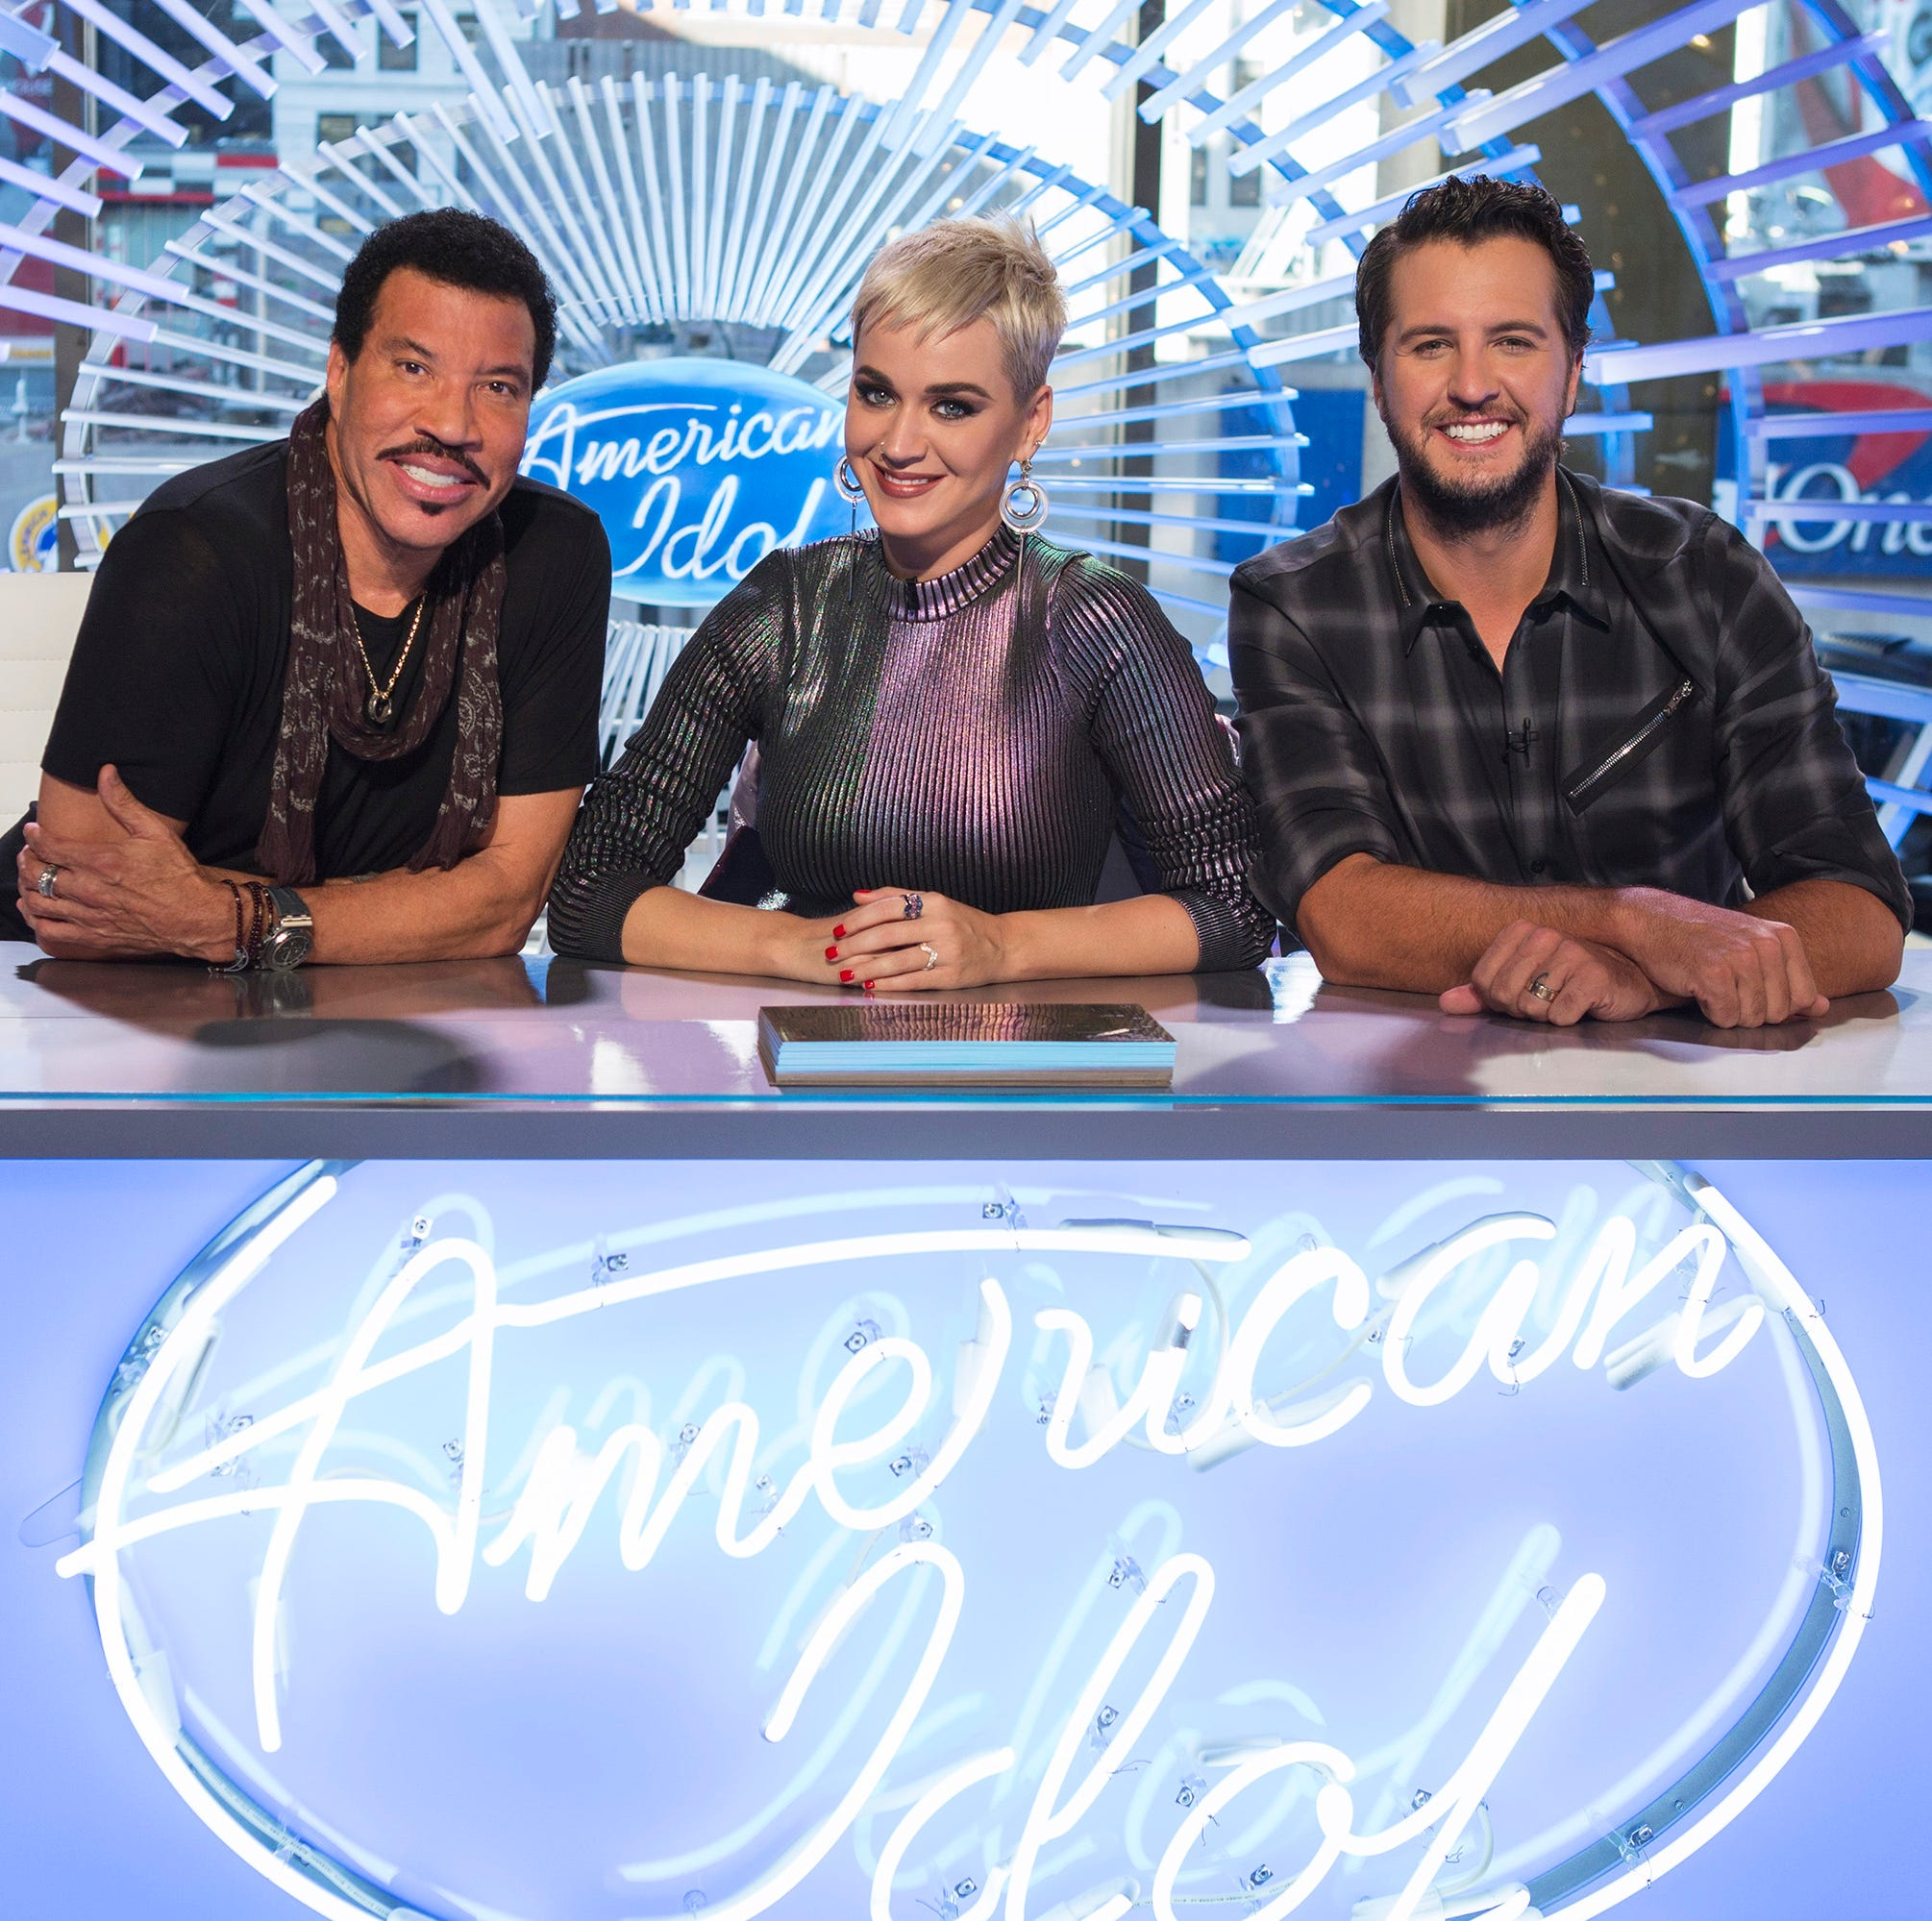 Turnersville sister who turned down golden ticket returns to 'American Idol'